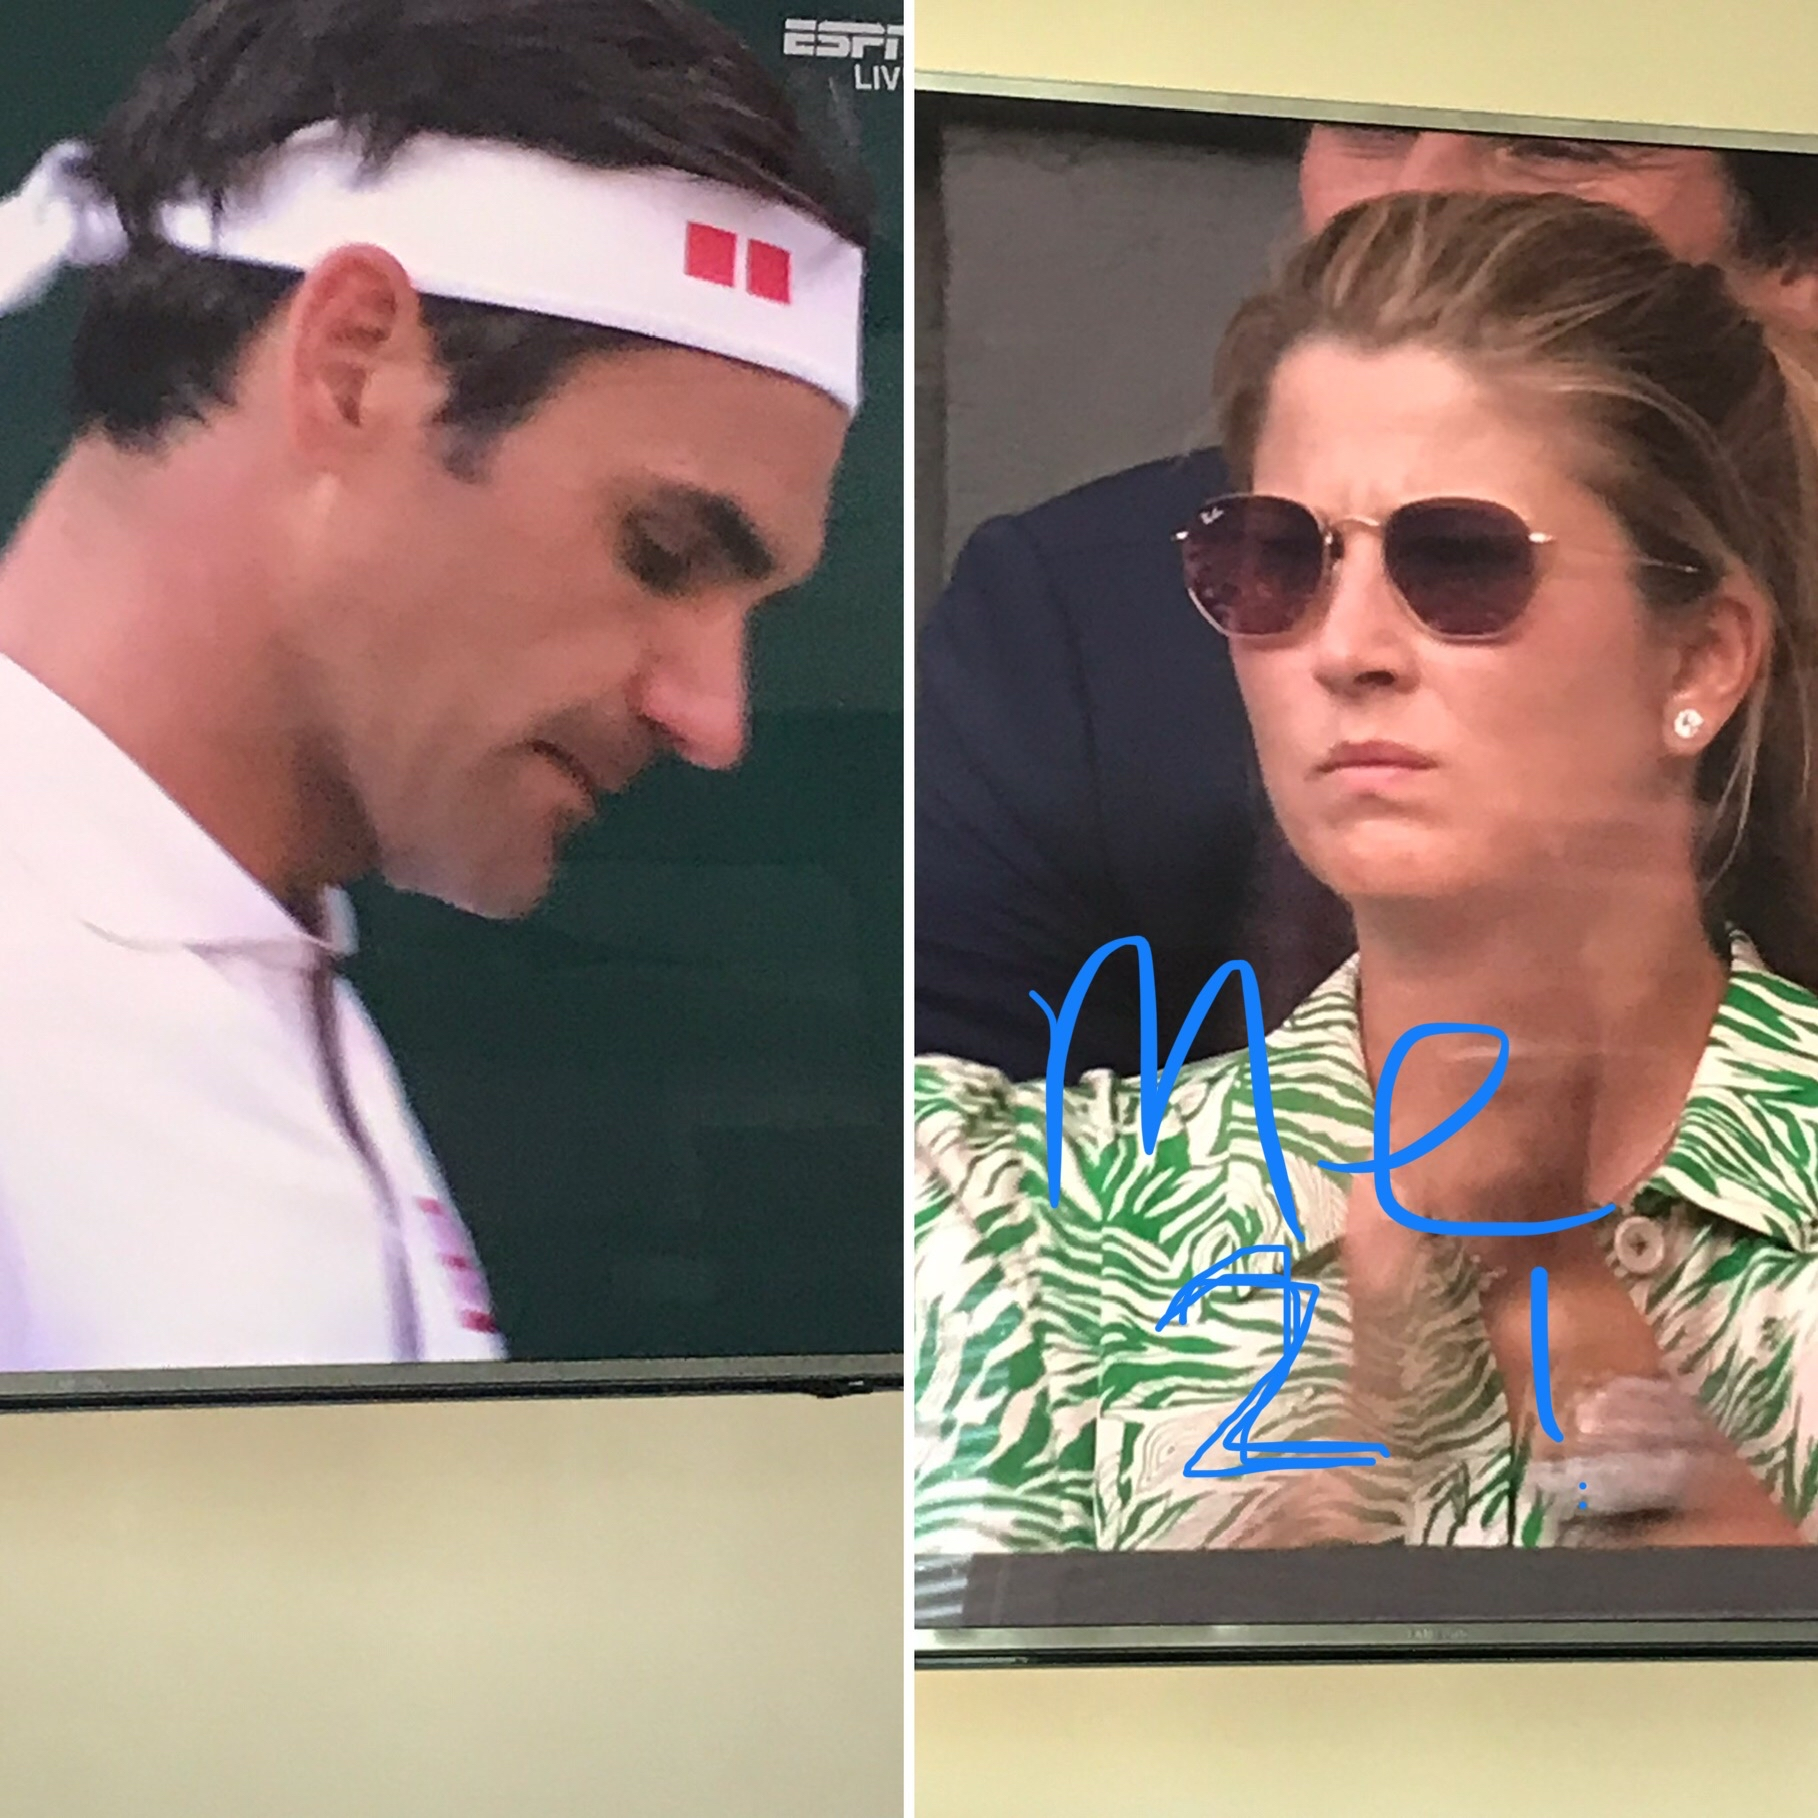 I actually made this during the match because Mirka, me too! I feel you! But, our man won.